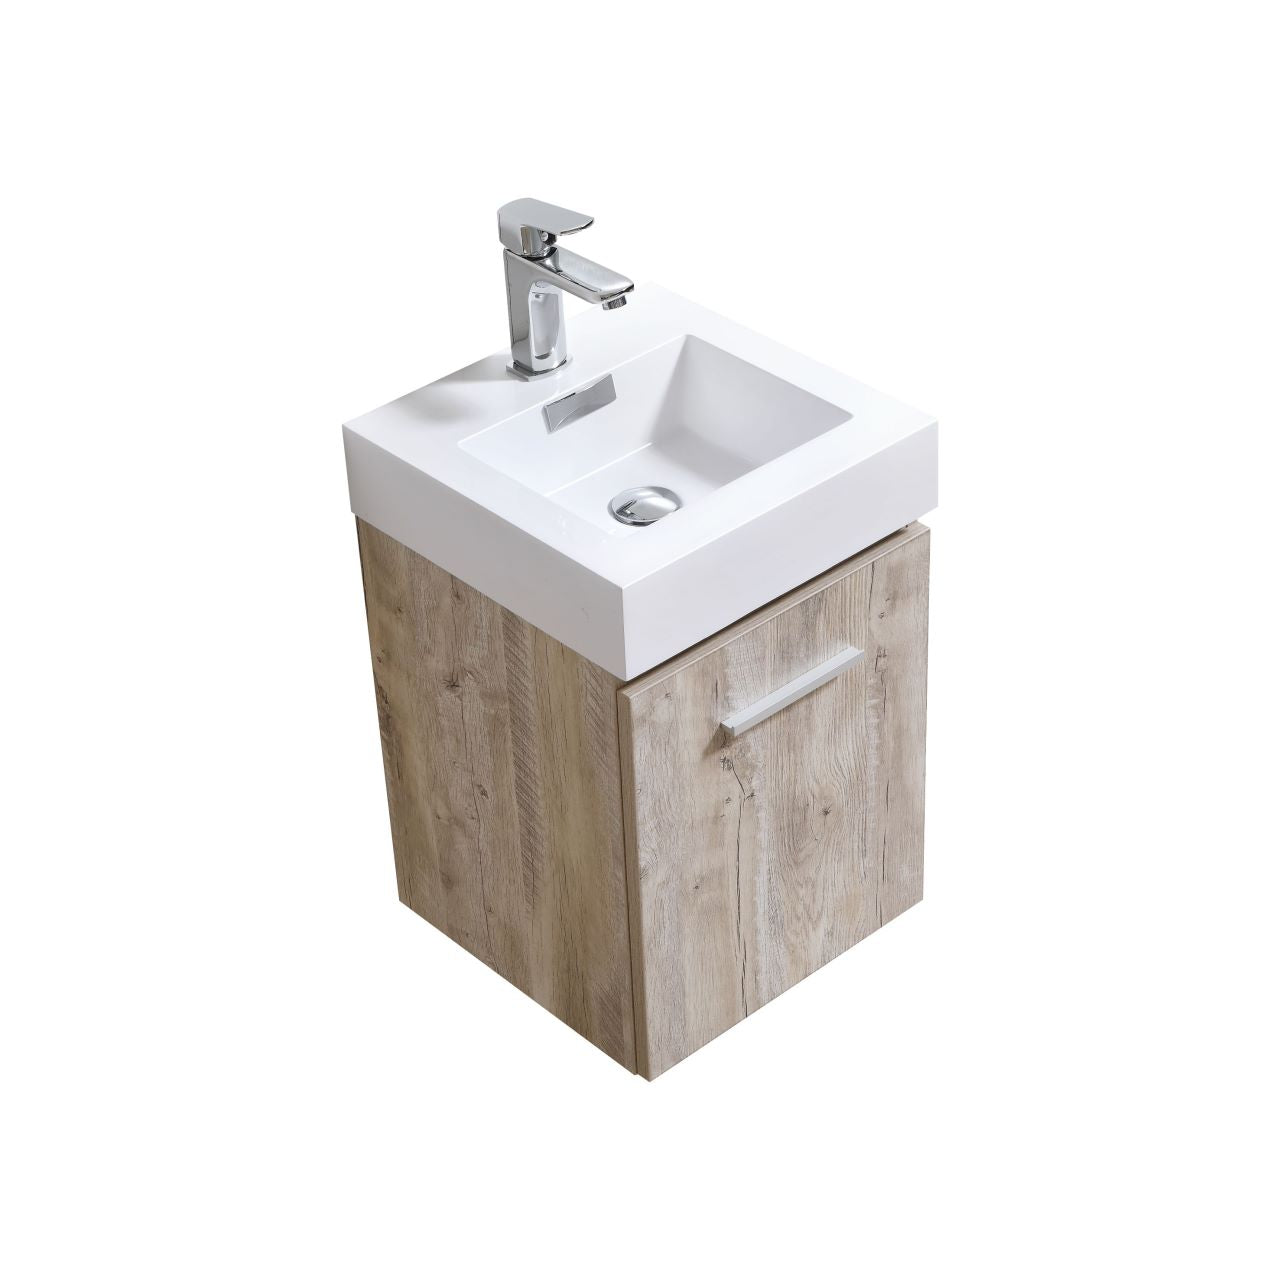 "BLISS- 16"" Nature Wood, Wall Mount Bathroom Vanity - Construction Commodities Supply Inc."